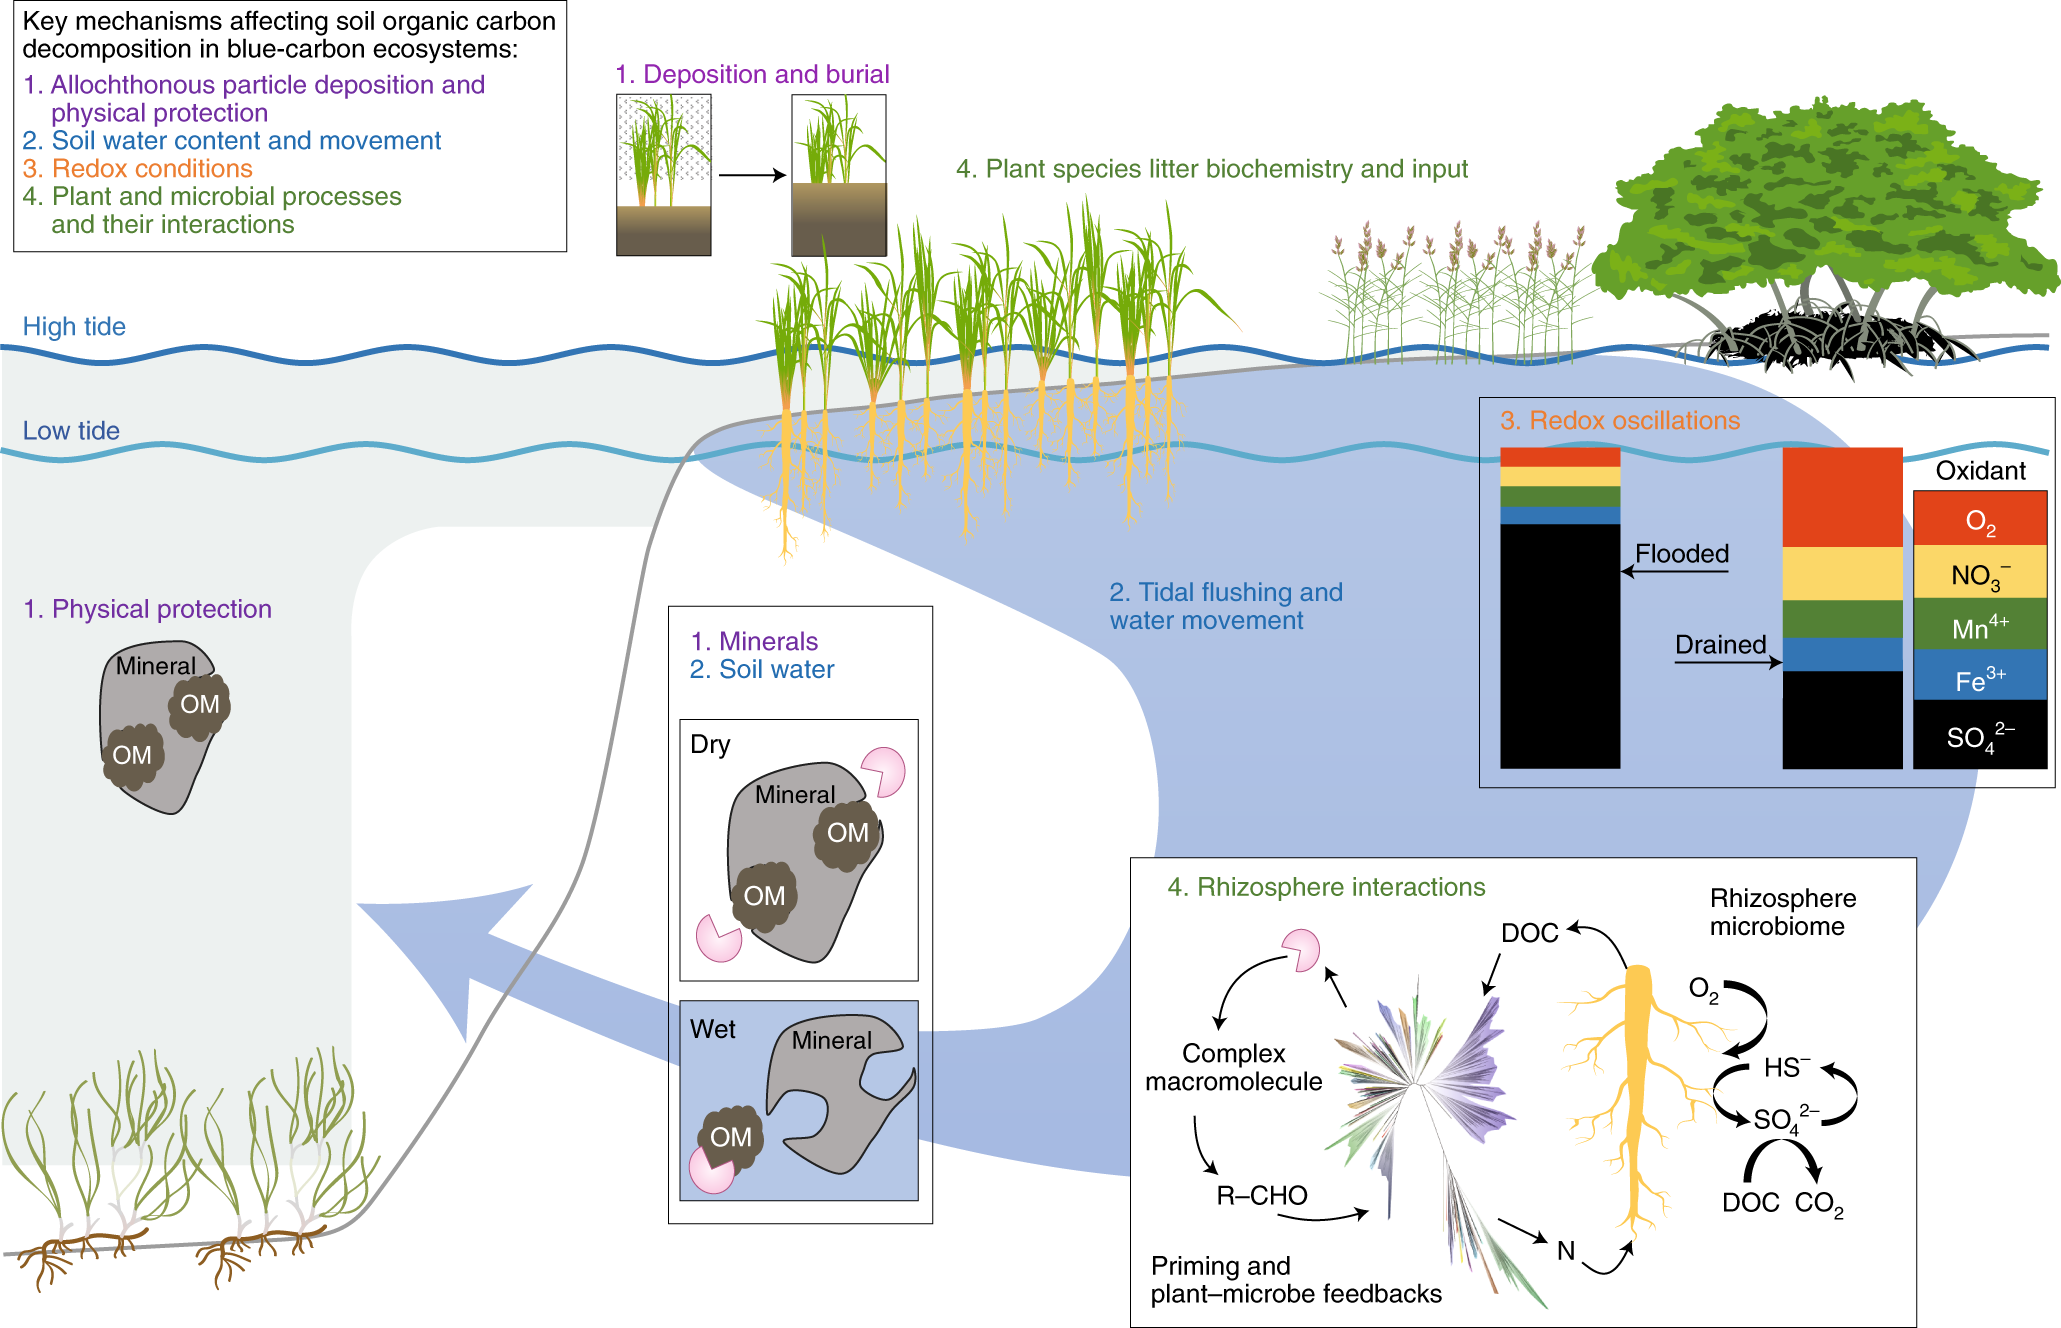 Global-change controls on soil-carbon accumulation and loss